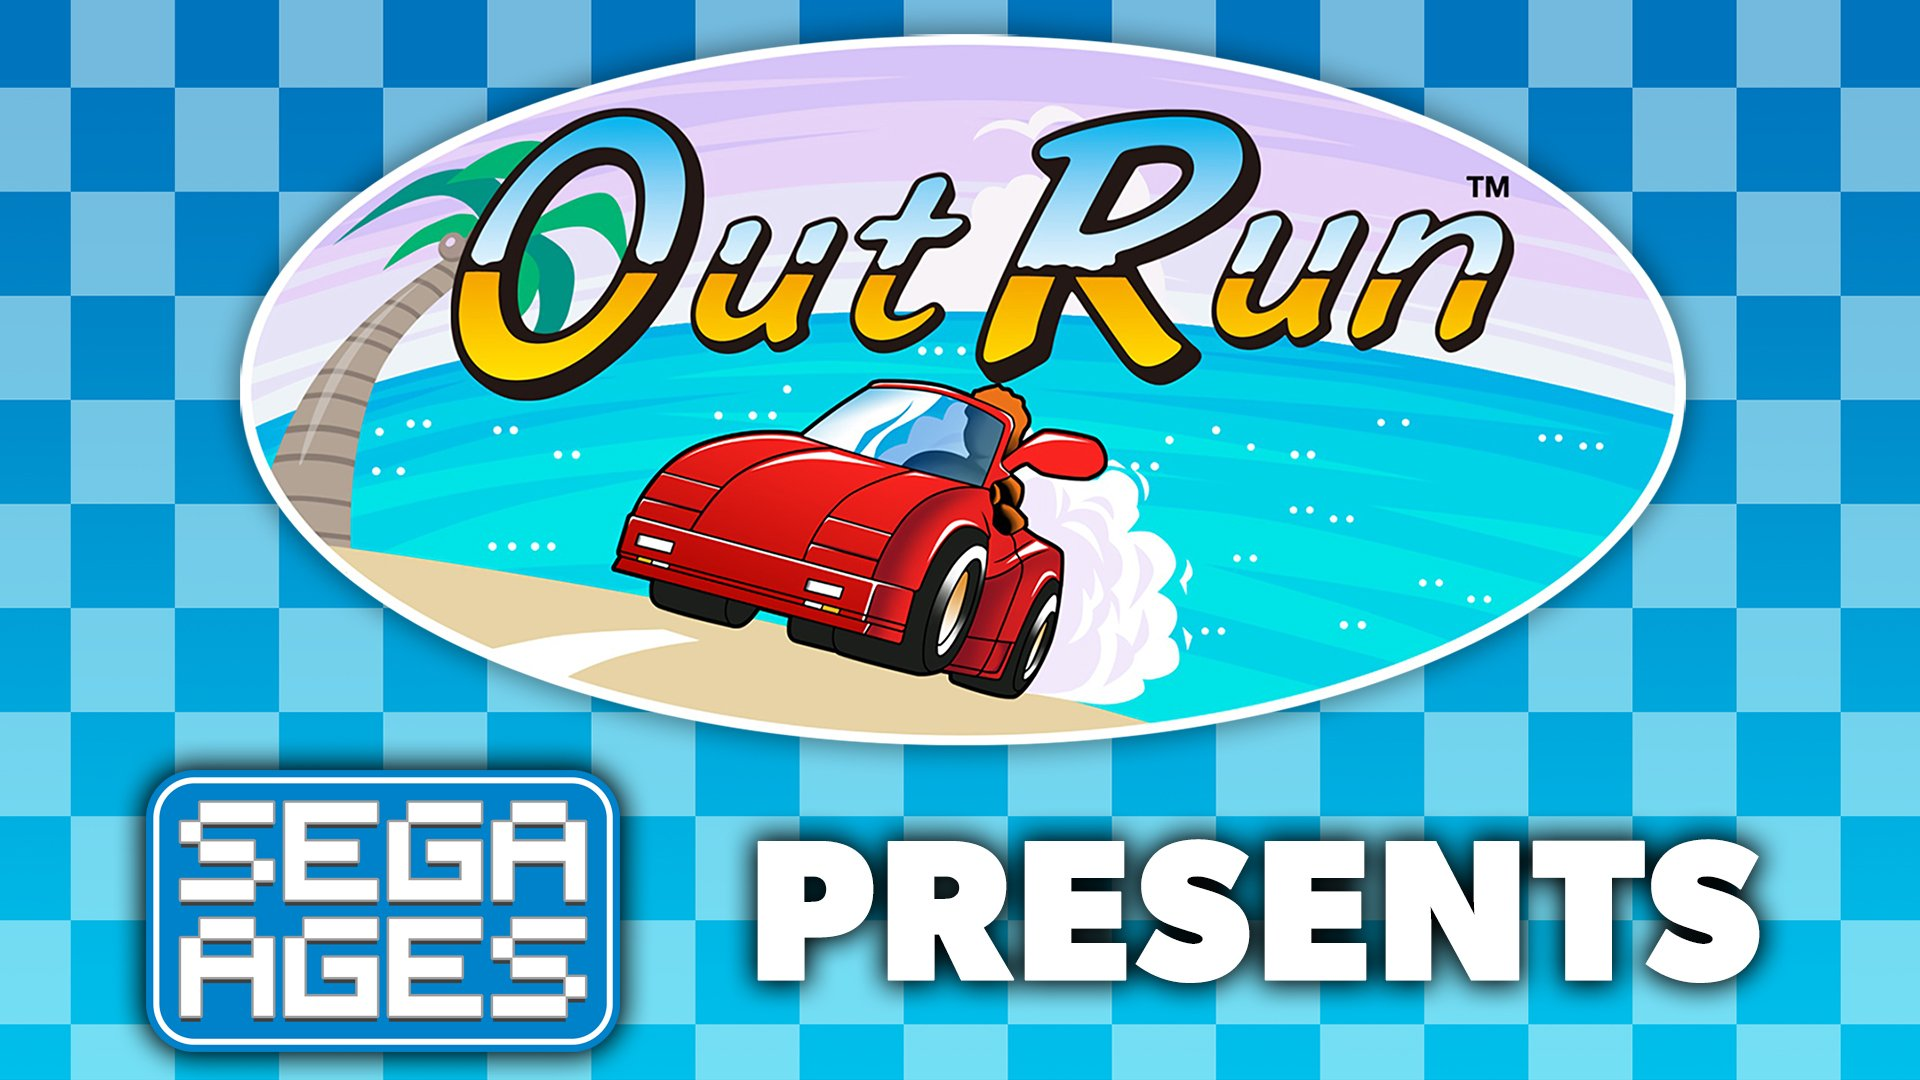 Head on over to the Nintendo eShop where Out Run is now available for Nintendo Switch!  https://t.co/3fIqw7d0Qy https://t.co/KlmLEbgTdy